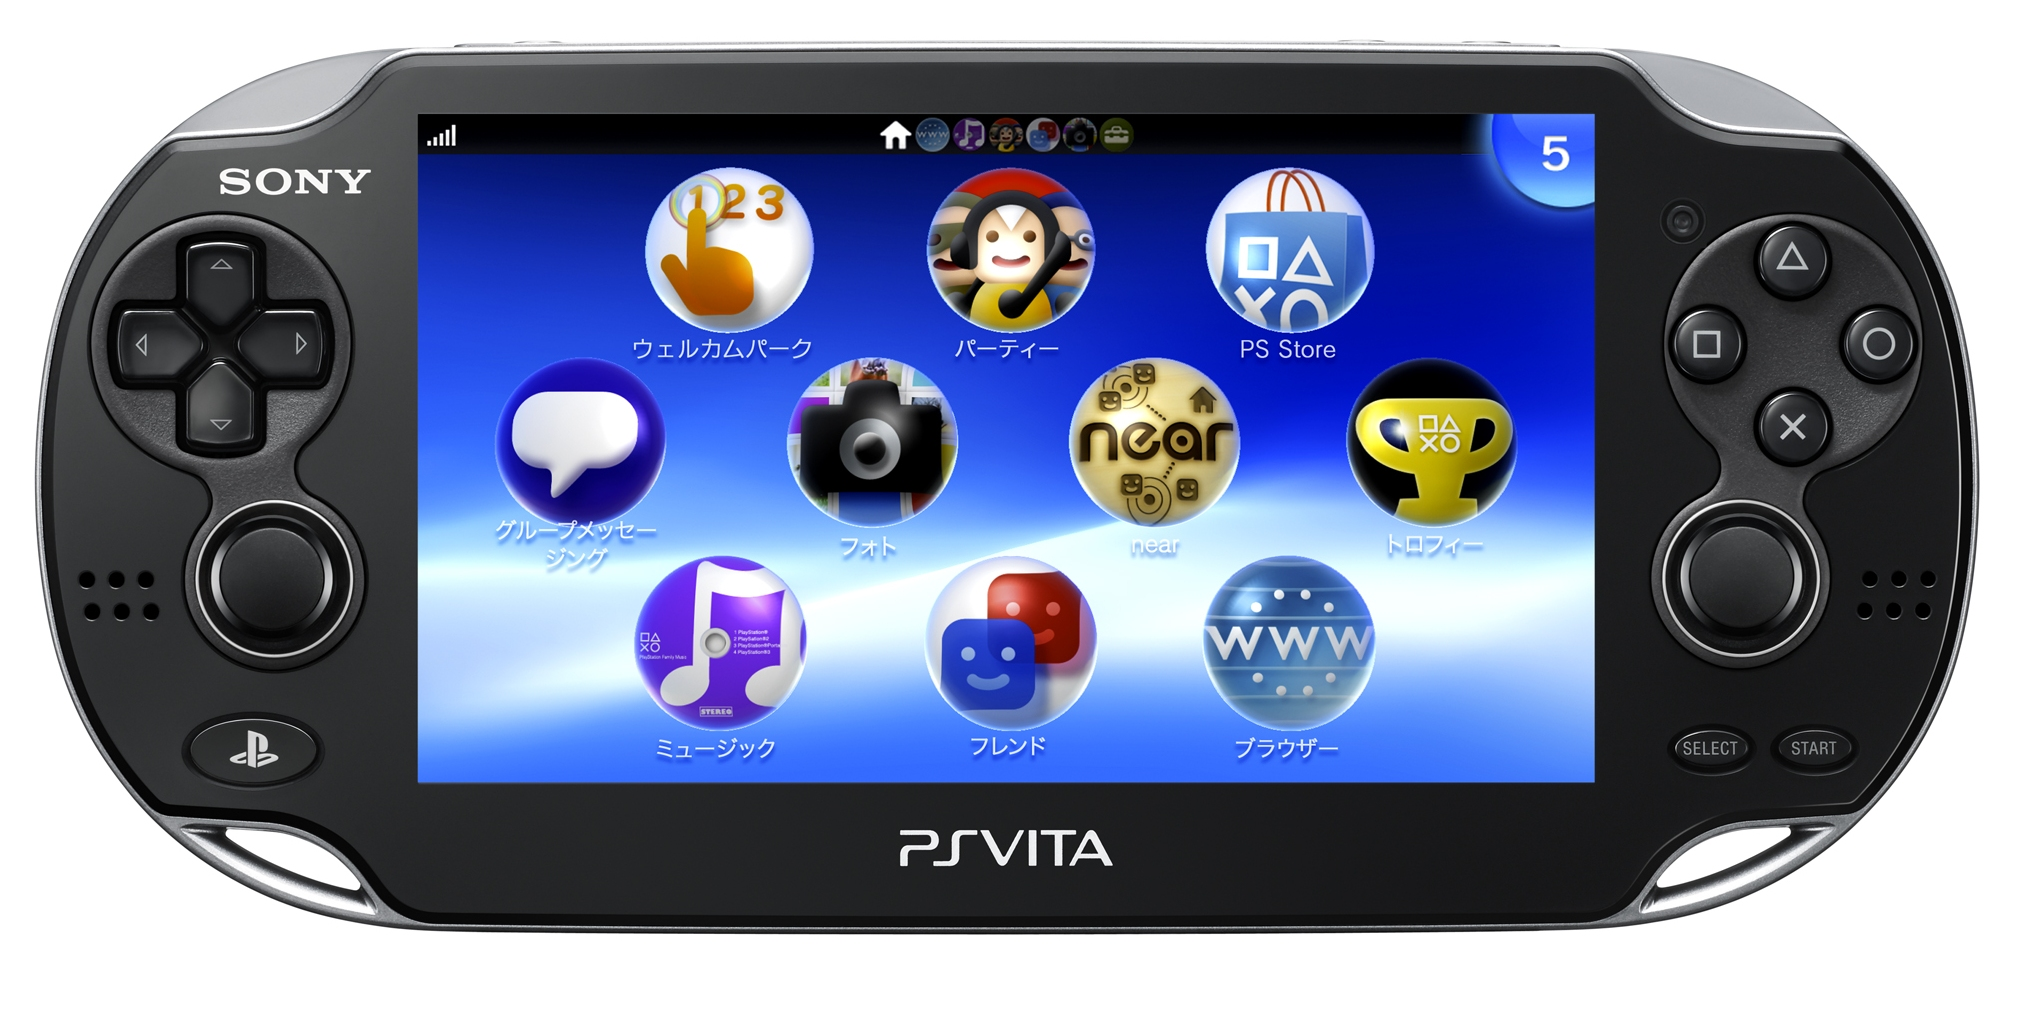 RIP PS Vita: Sony officially ends production - Polygon